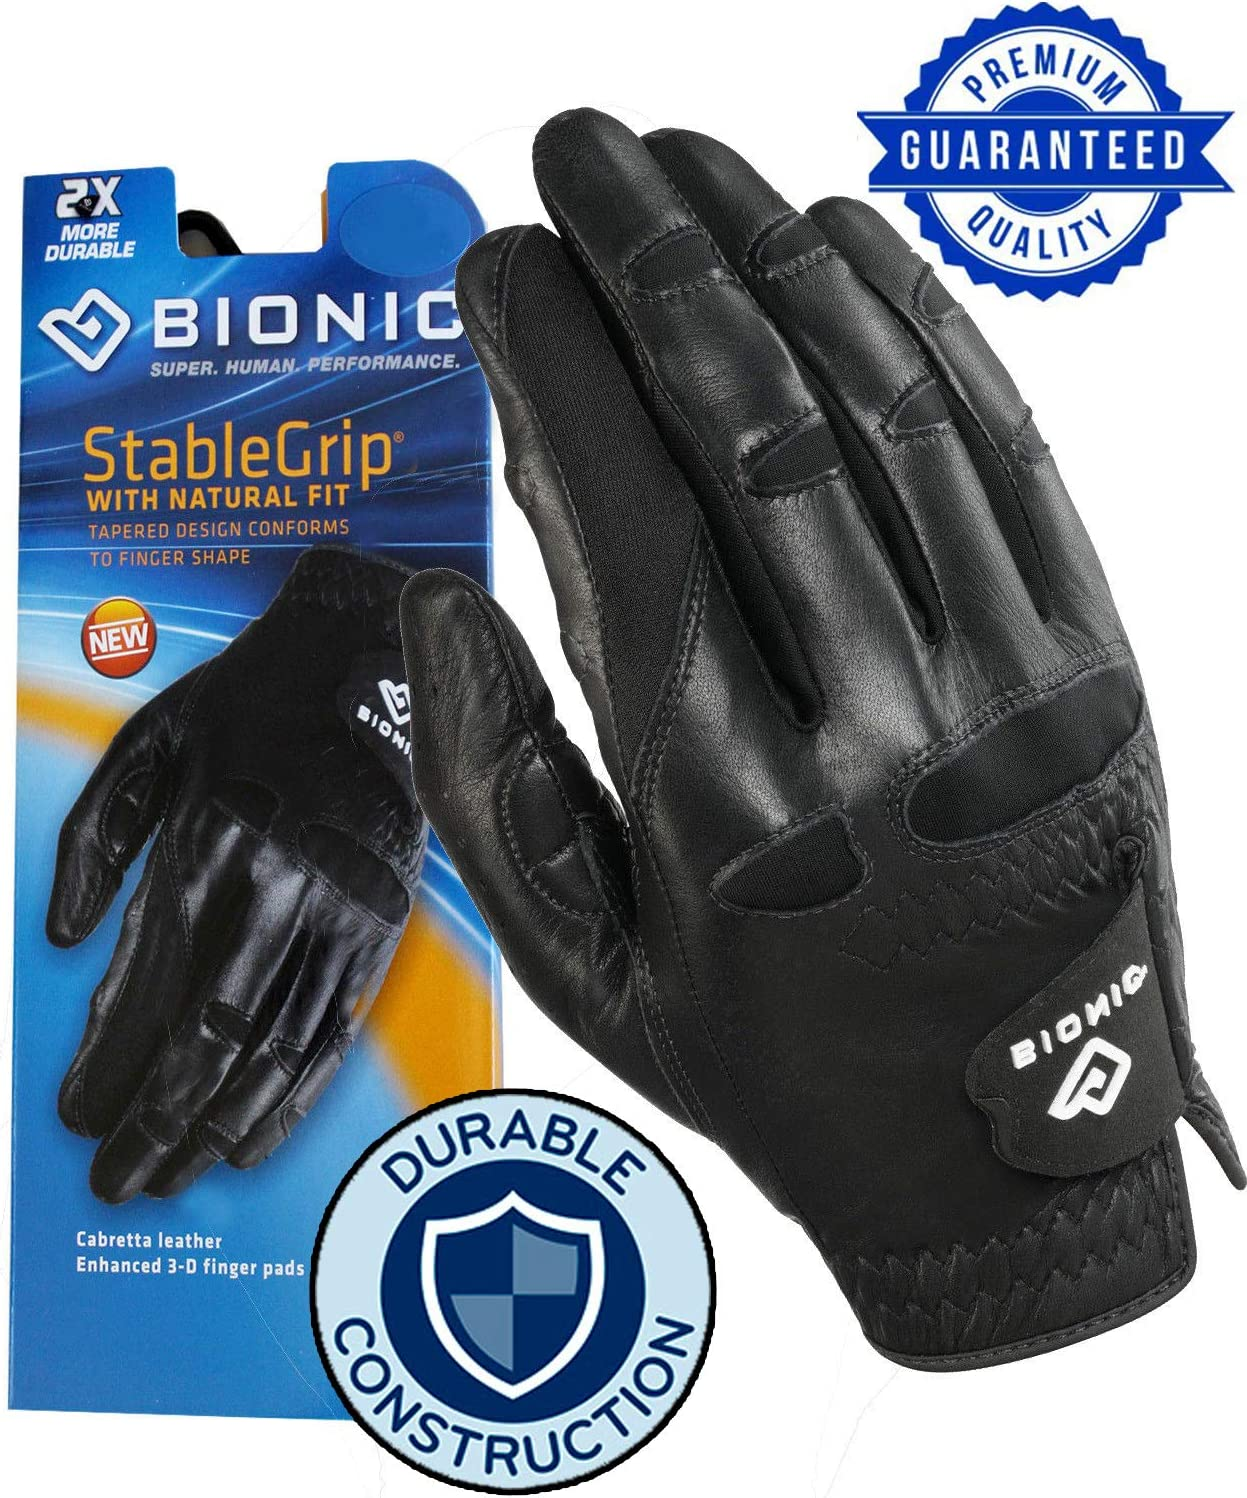 Challenge the lowest price New Improved 2X Long Lasting Men's StableGrip Bionic Black Golf Raleigh Mall